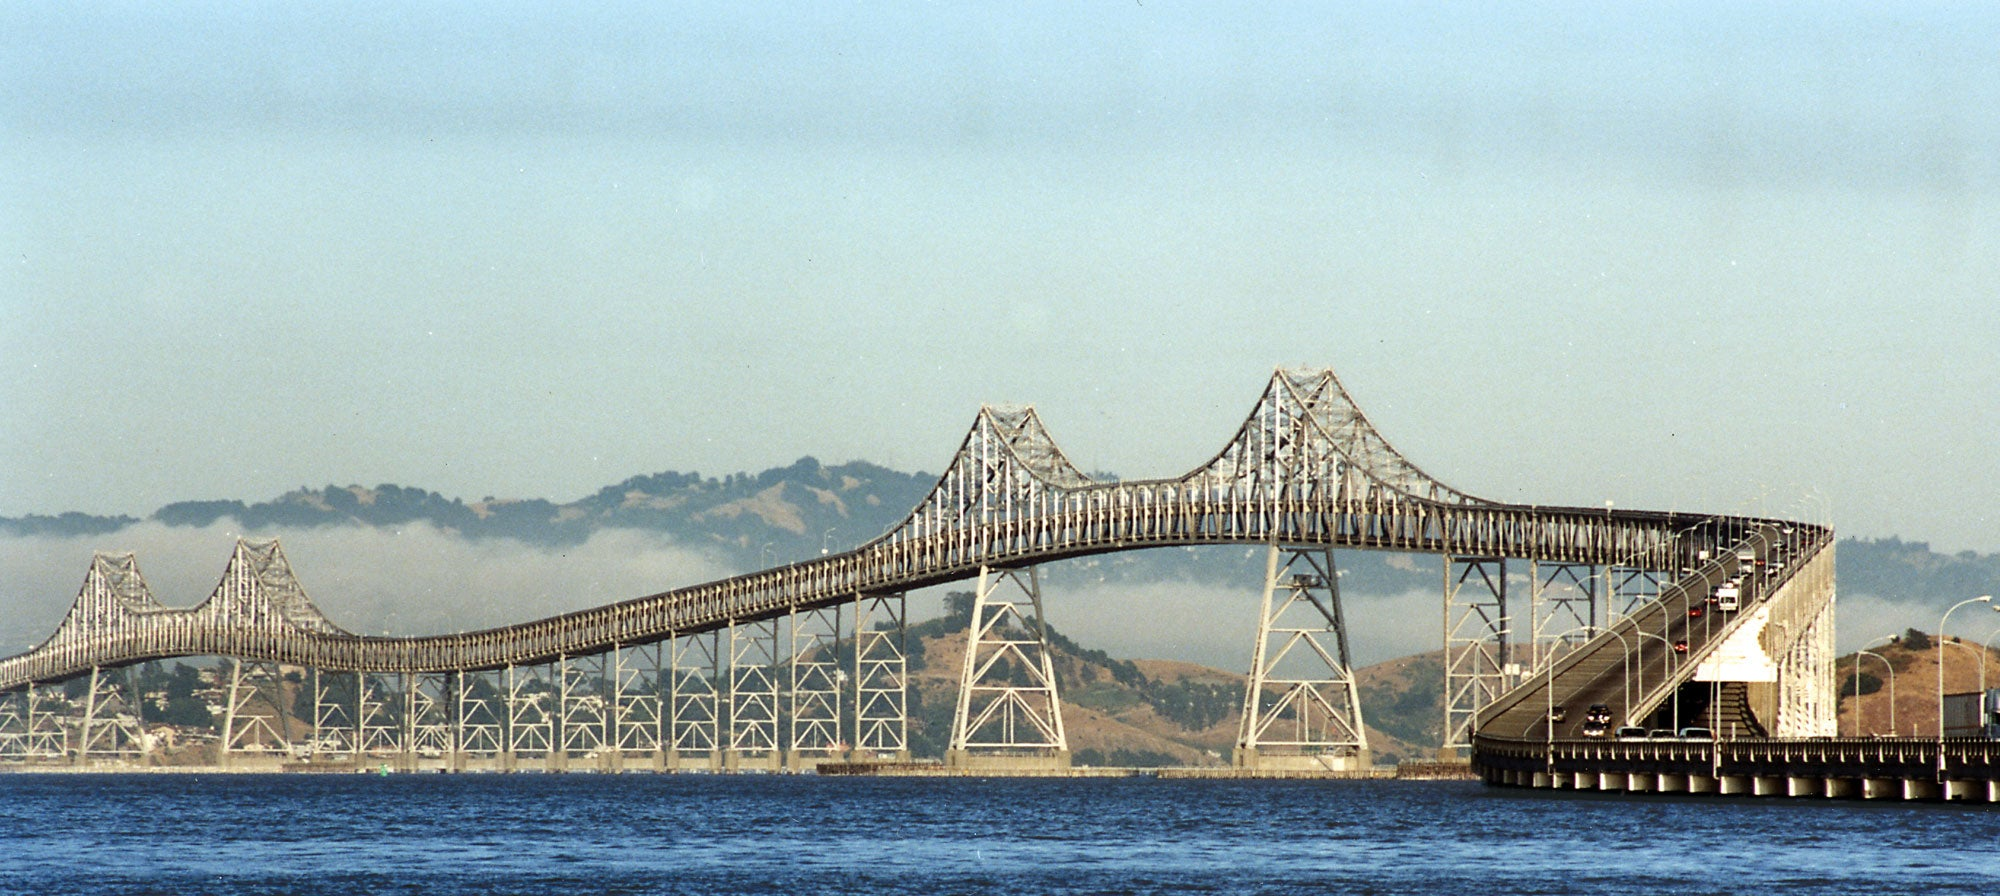 Richmond-San Rafael Bridge